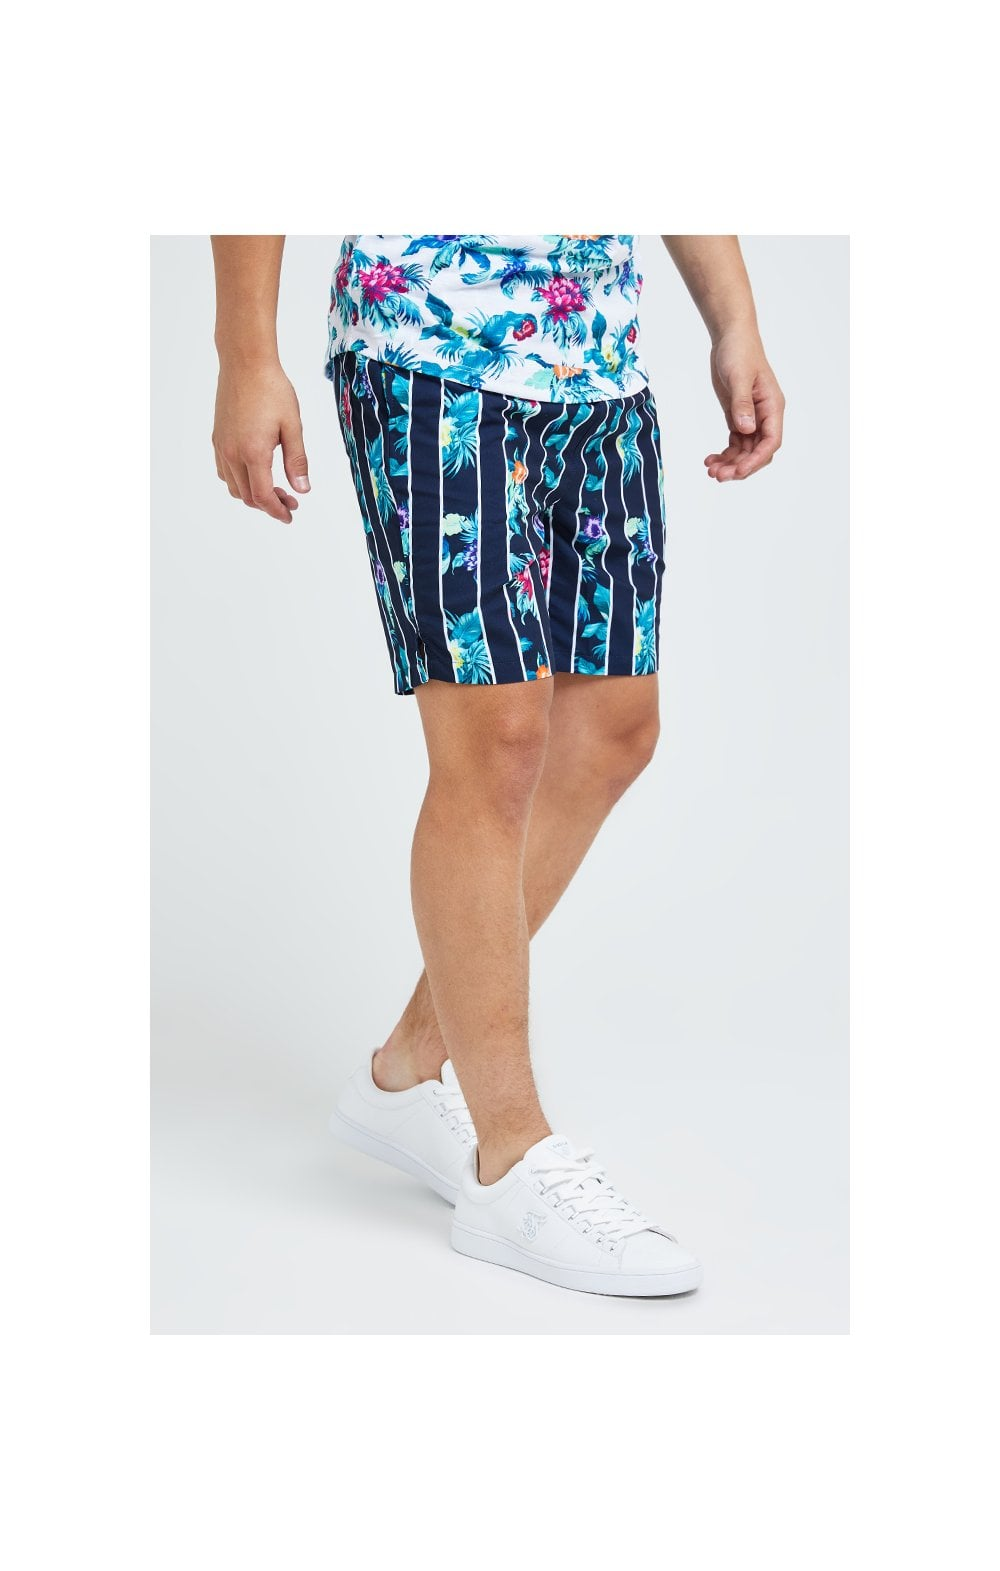 Illusive London Floral Stripe Swim Shorts - Navy & Floral (1)